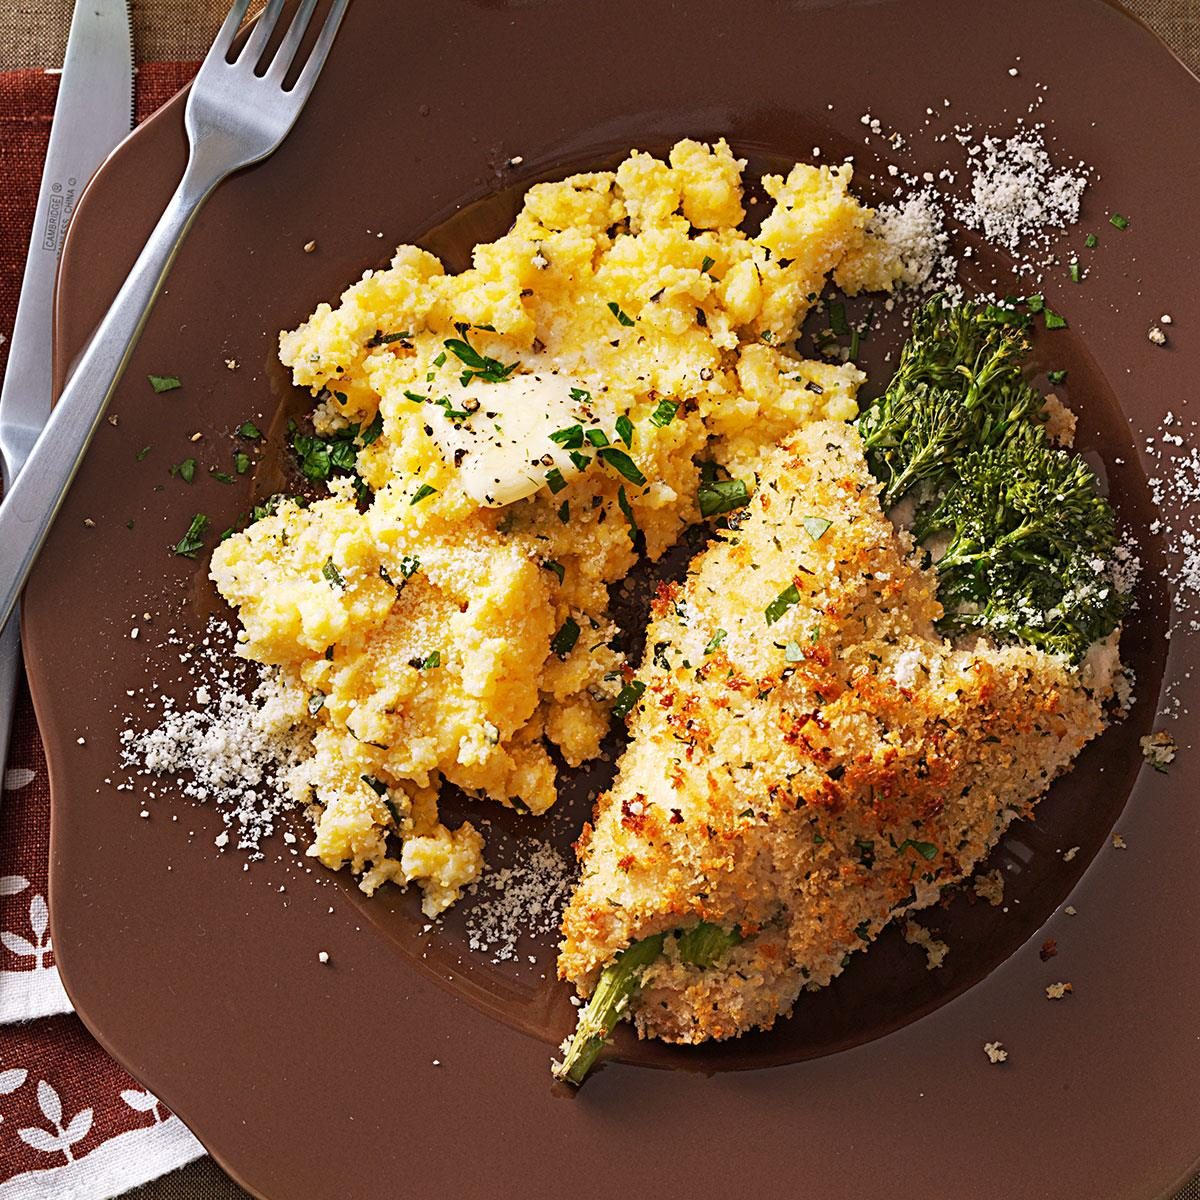 Chicken stuffed with broccolini cheese recipe taste of home forumfinder Choice Image